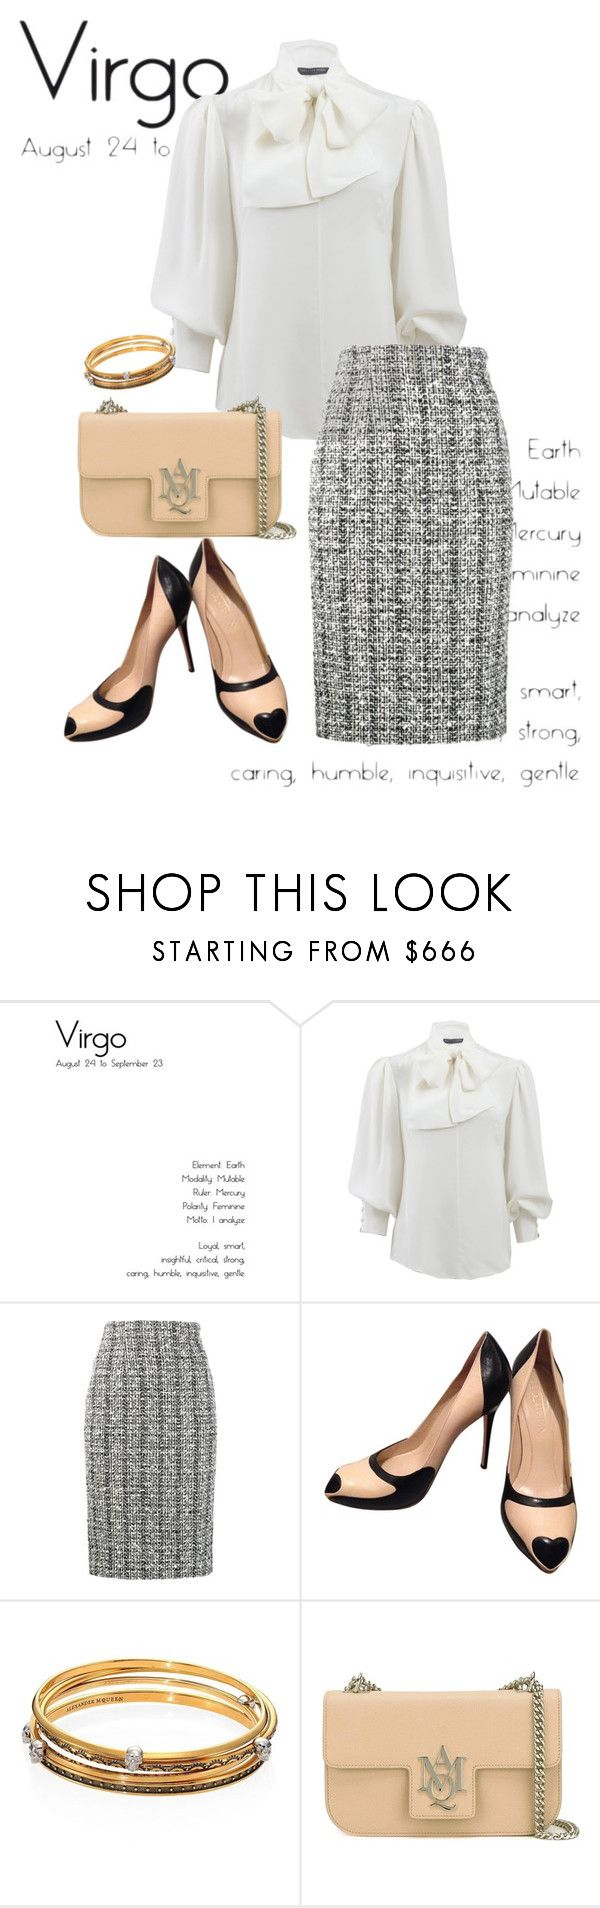 """""""virgo"""" by masayuki4499 ❤ liked on Polyvore featuring Alexander McQueen"""